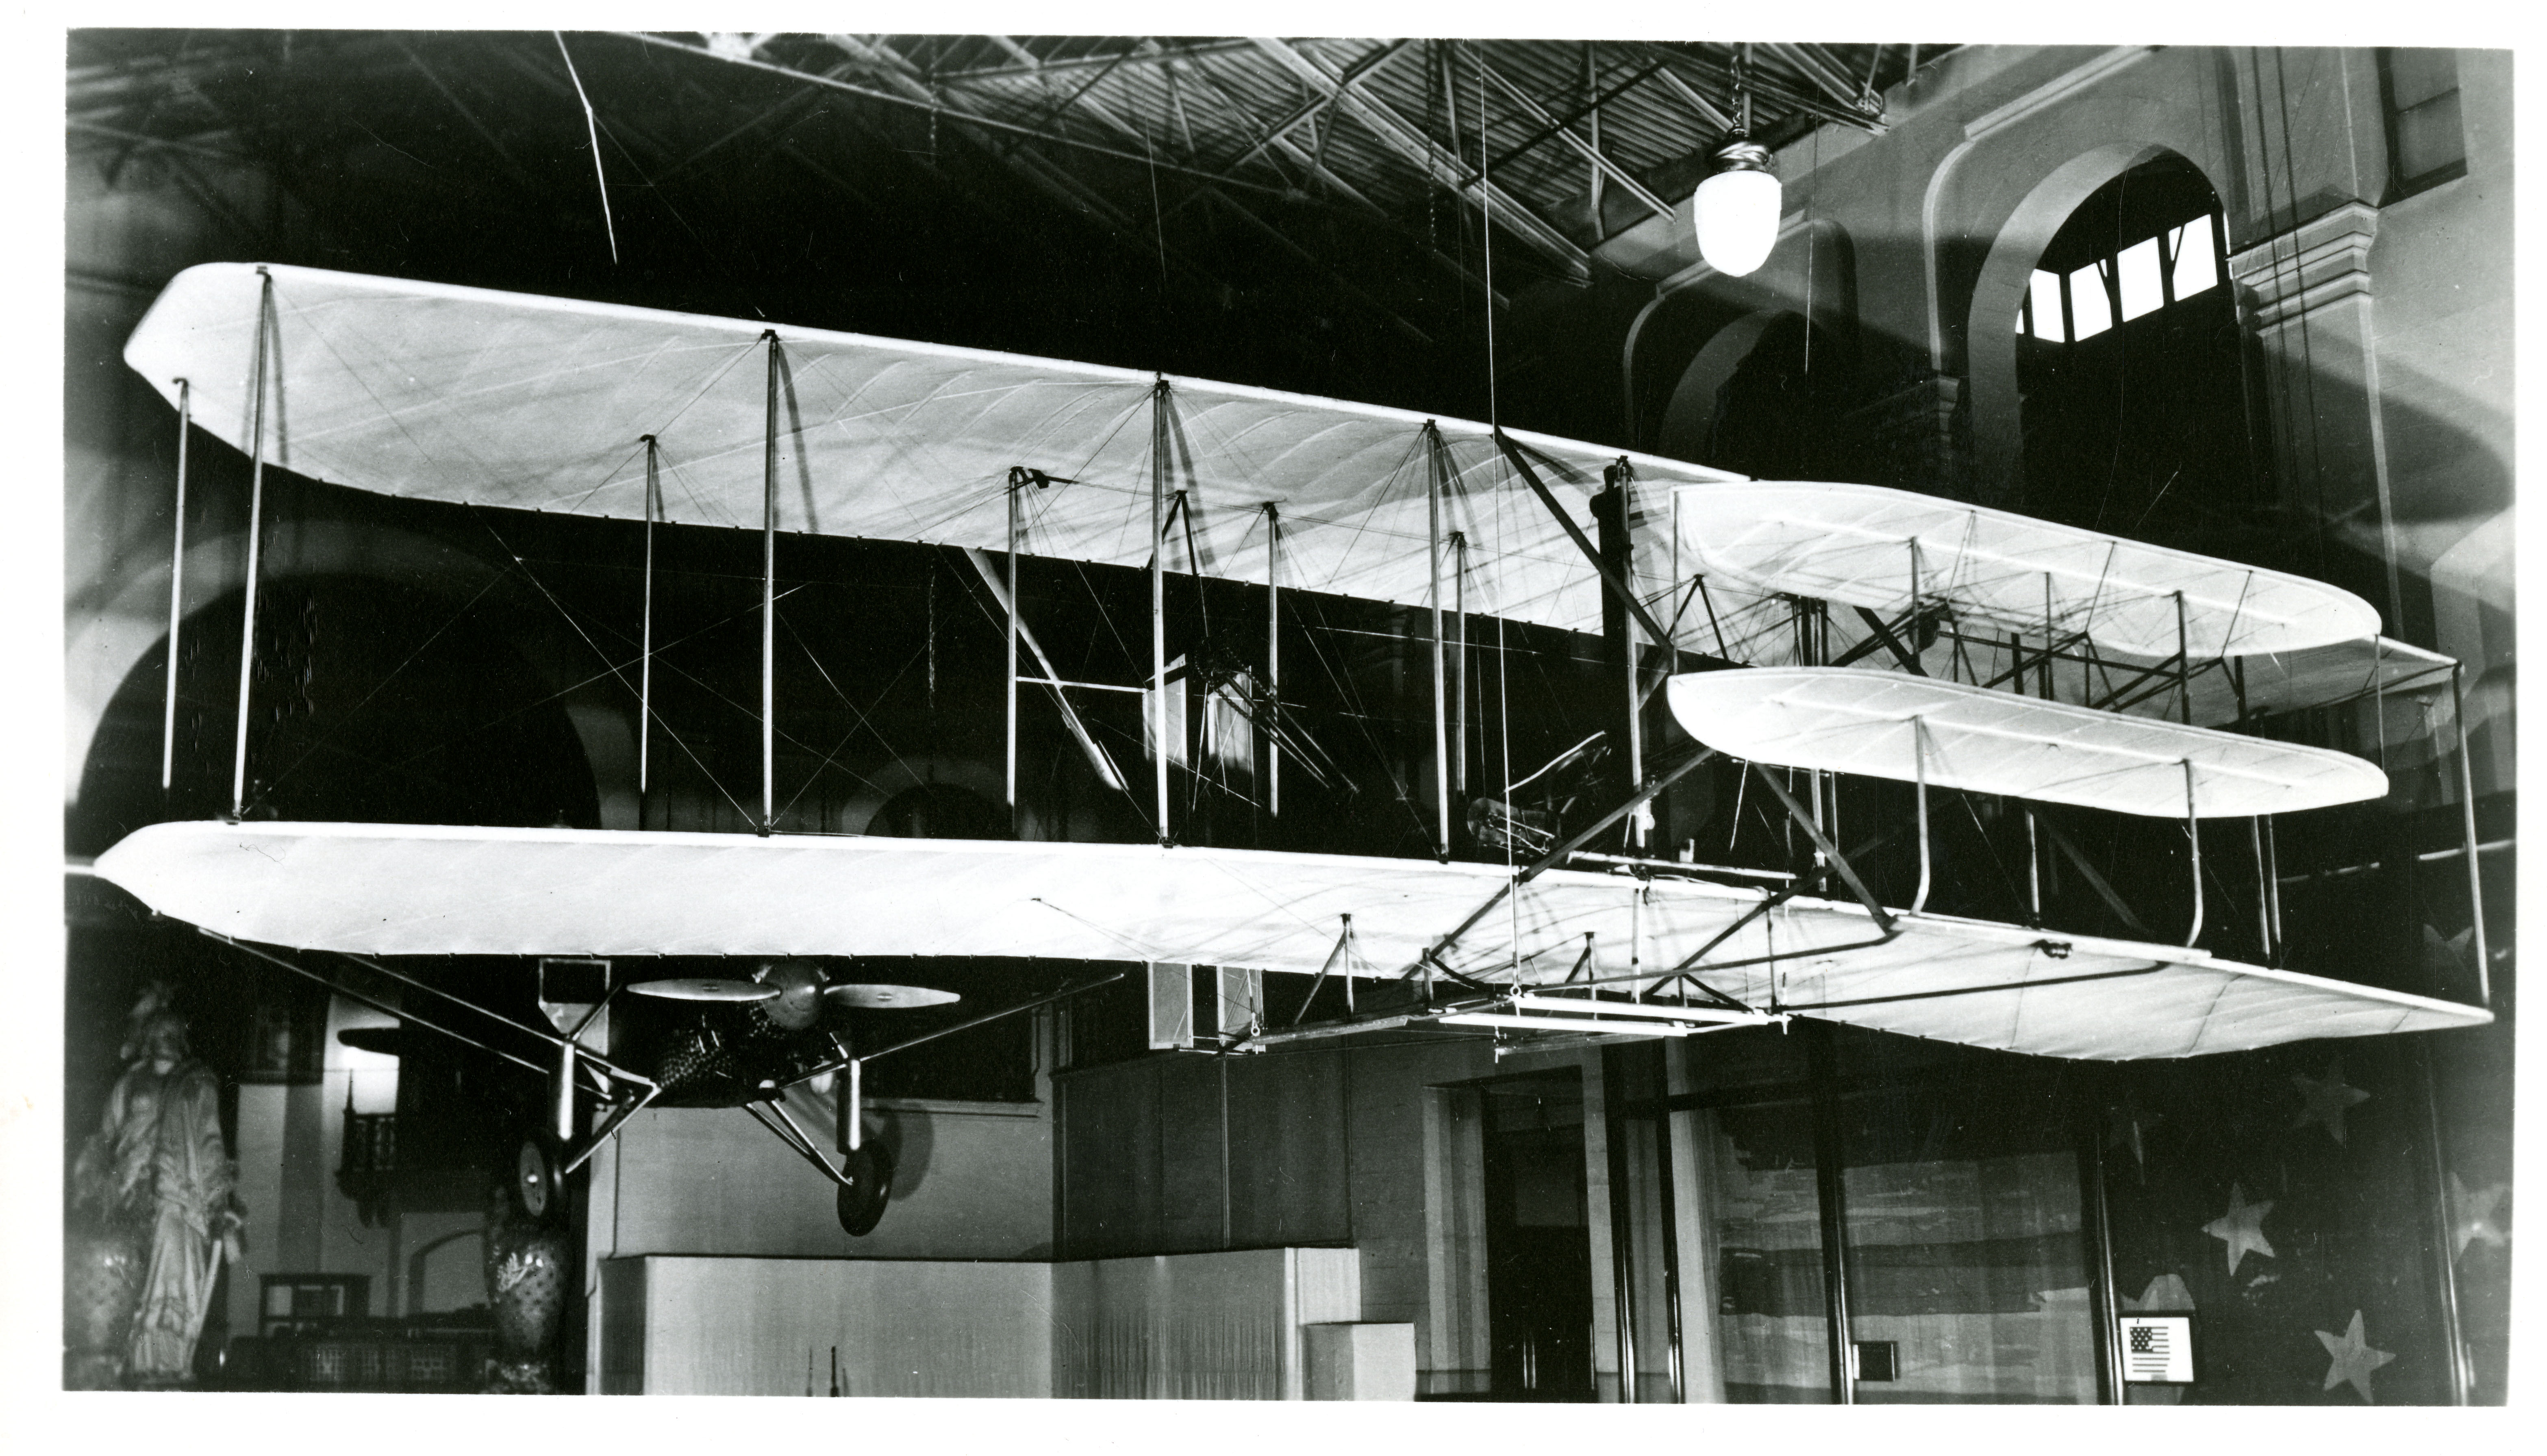 Old Exhibits, Original Wright Brothers Aeroplane of 1903.